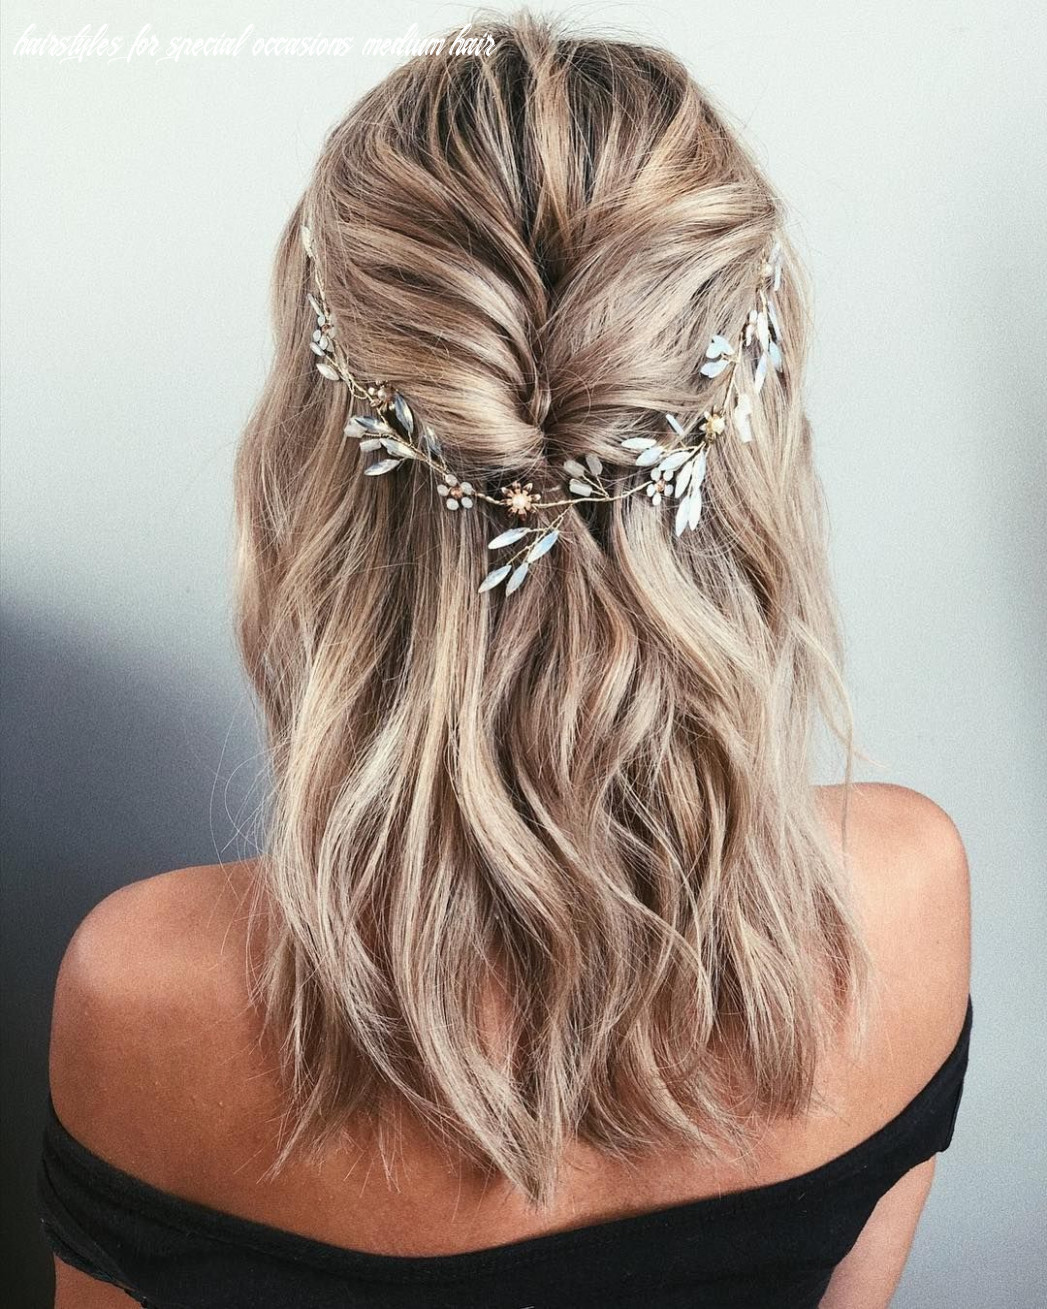 11 special occasion hairstyles for long hair | simple wedding